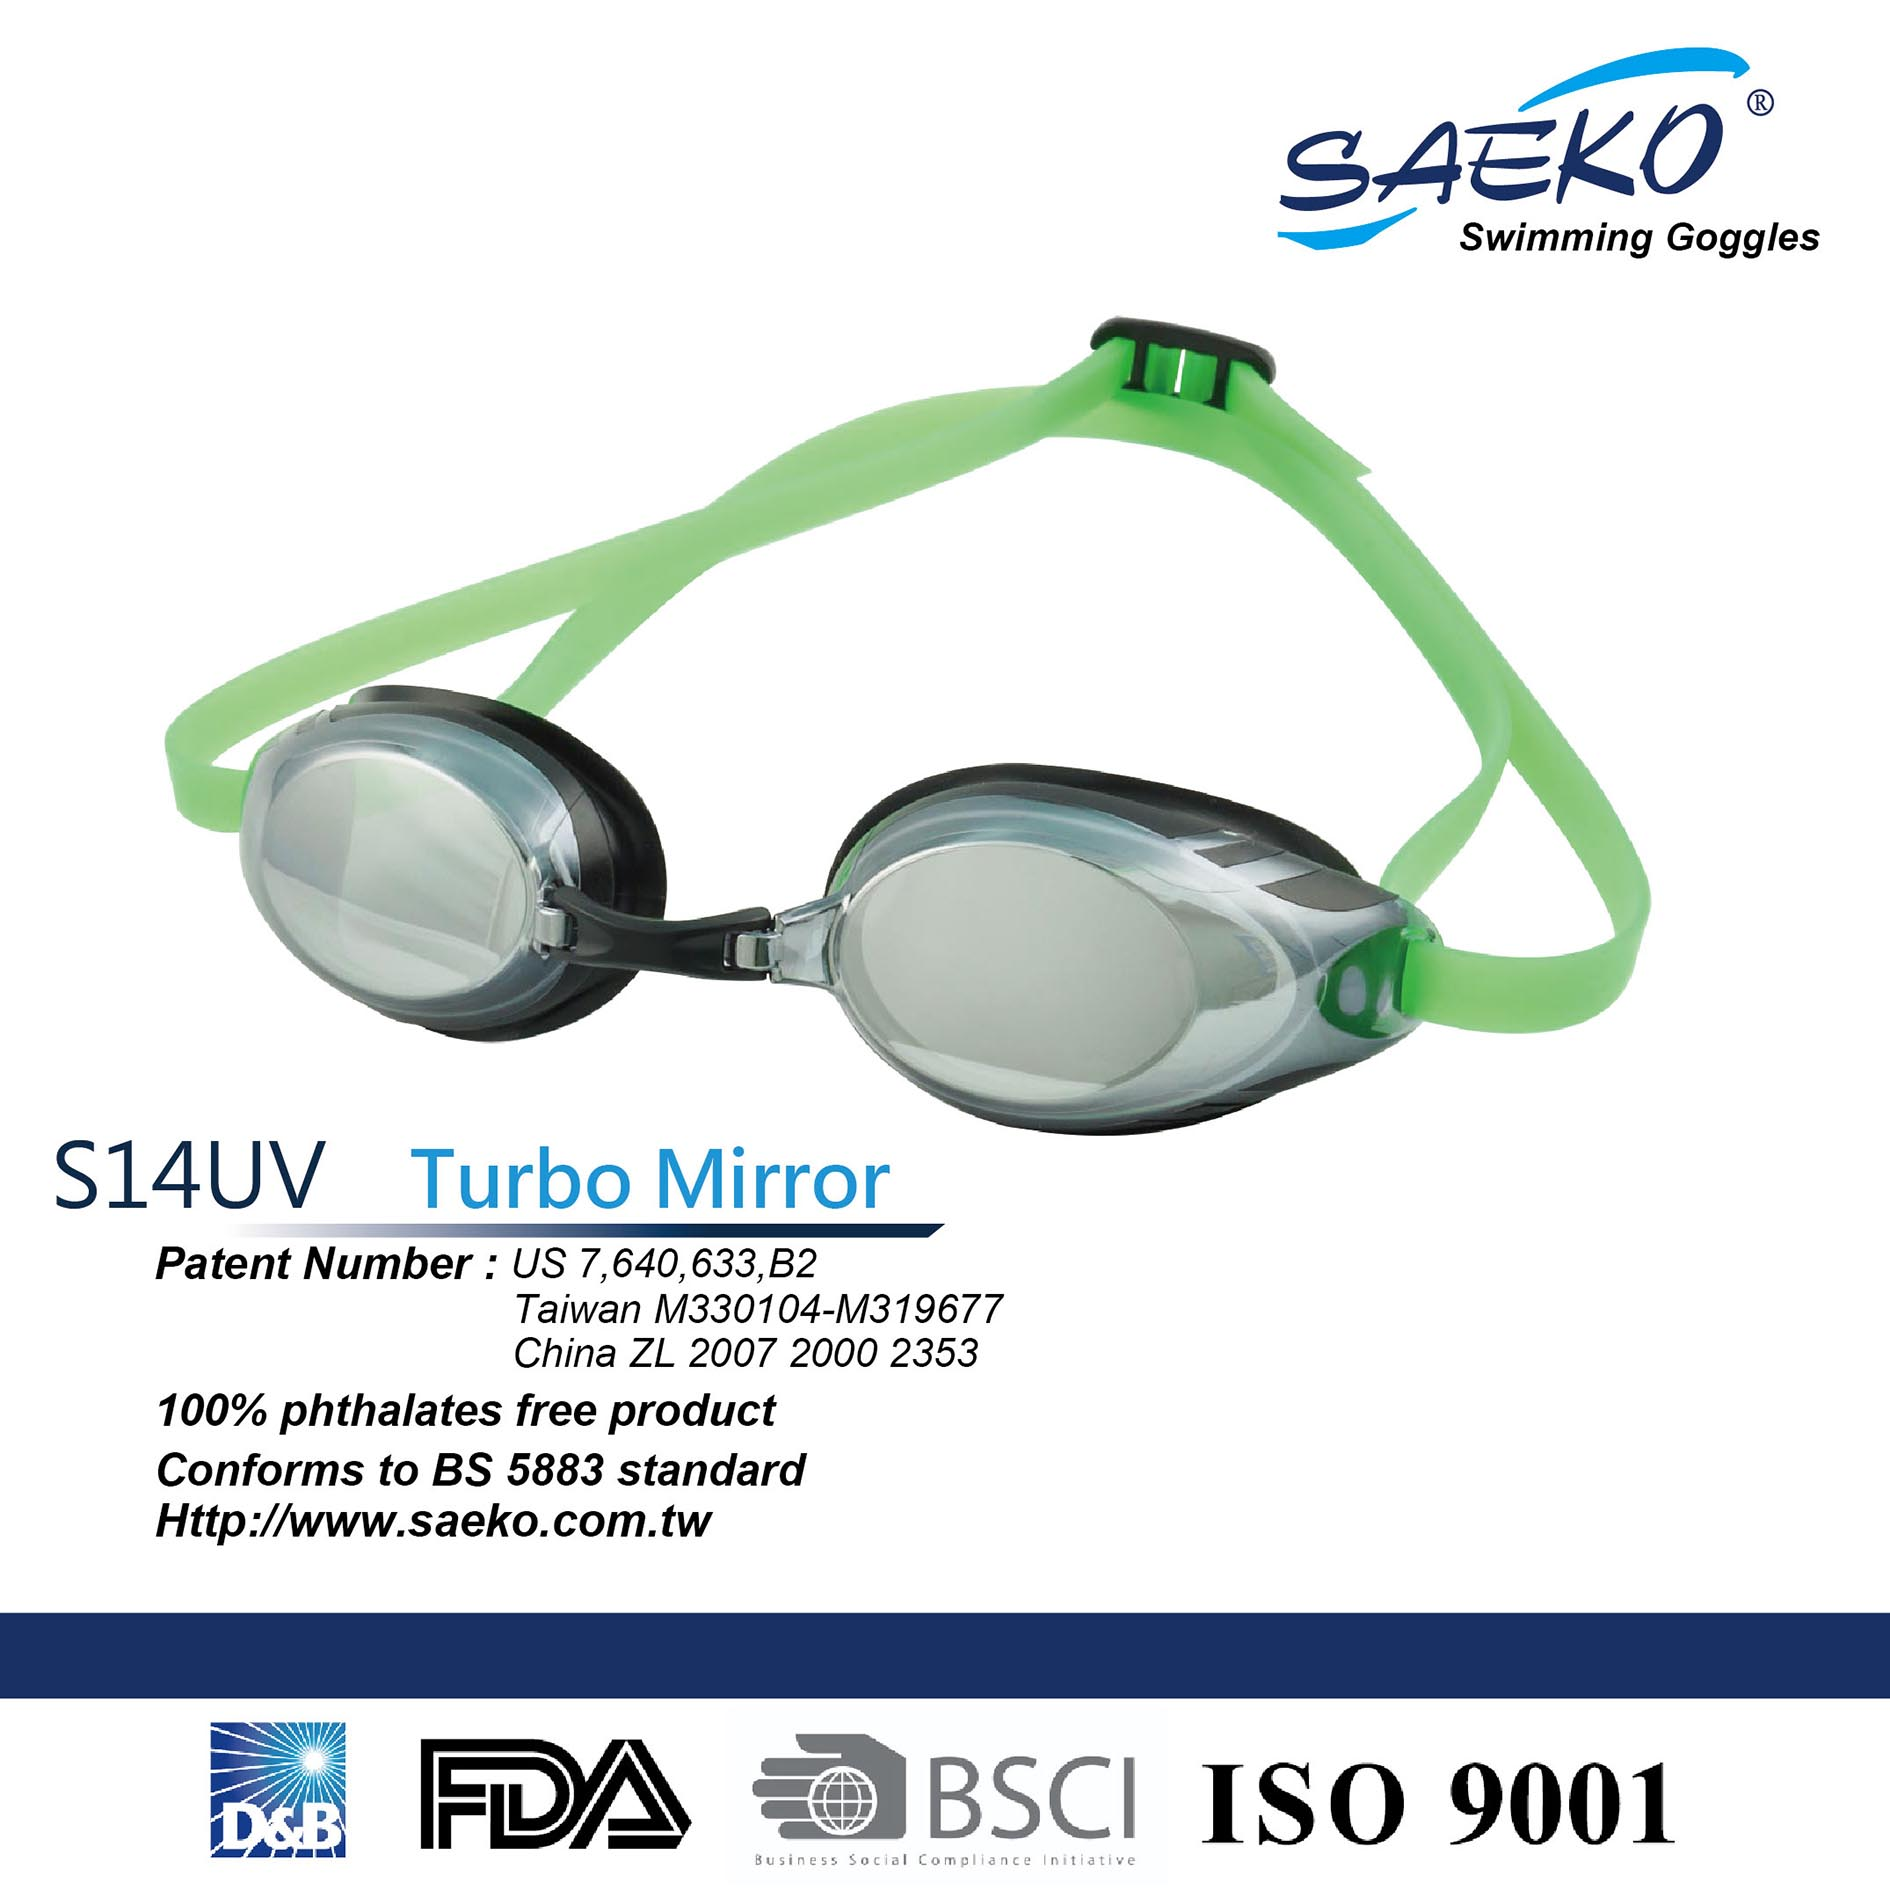 31aed9176d7b Best-selling Racing SWIMMING GOGGLES S14UV Turbo Mirror BKGN